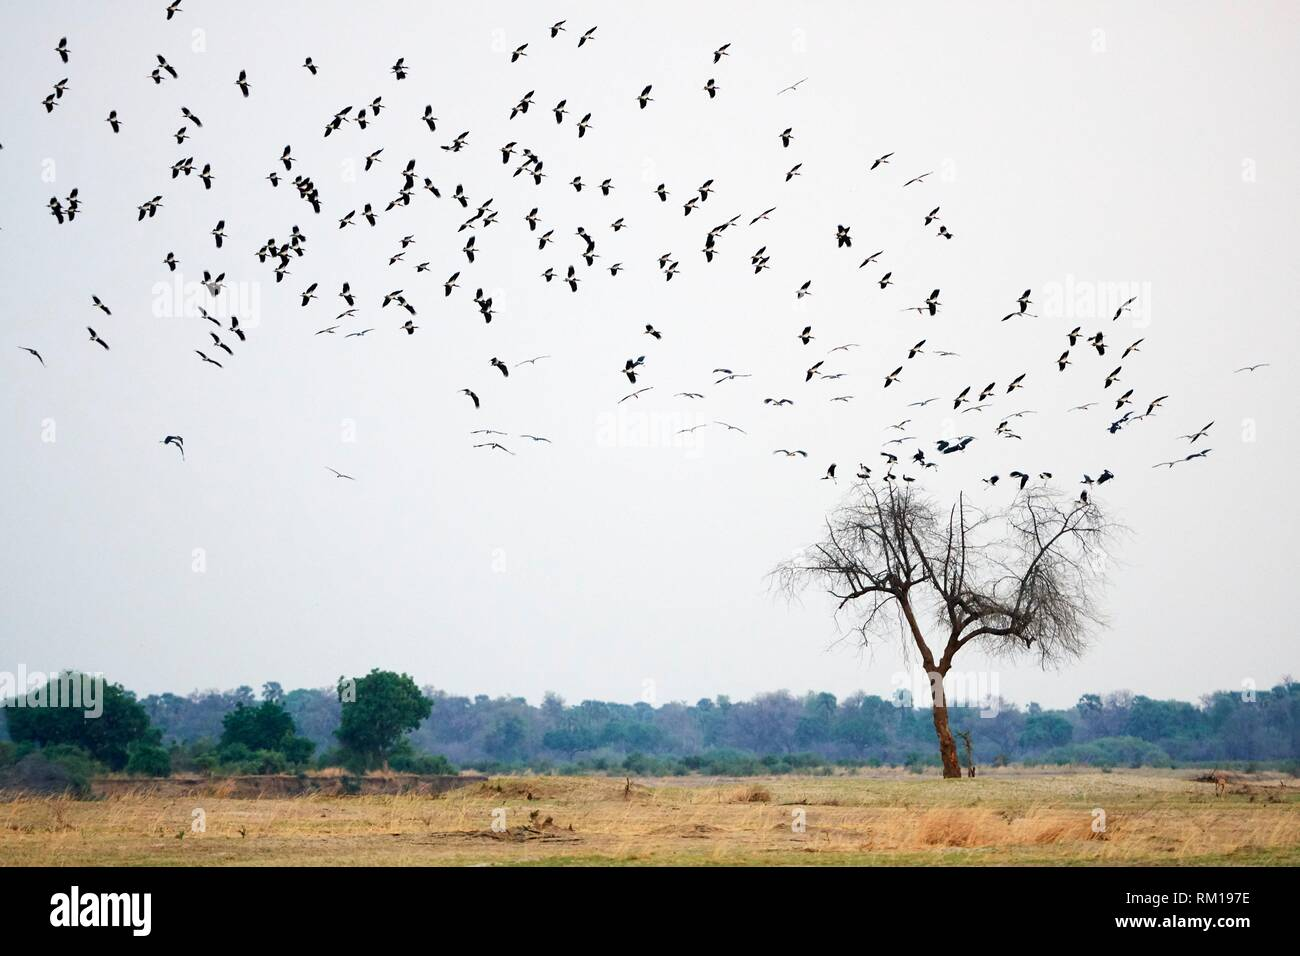 Abdim's stork (Ciconia abdimii) flock on migration arriving to South Luangwa National Park in november for rainy season, Zambia. - Stock Image